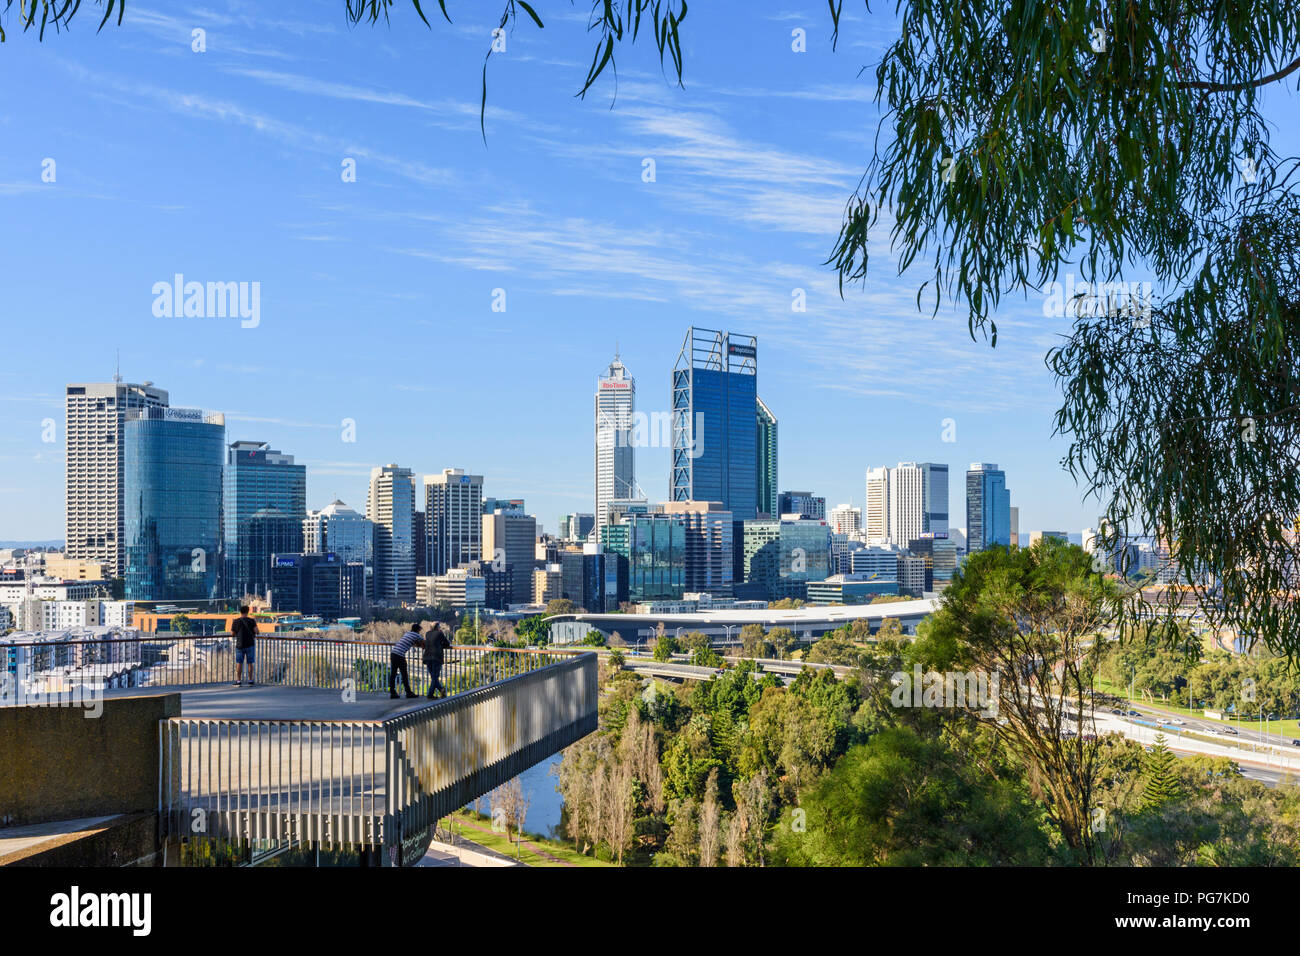 View of the Perth city CBD from Kings Park, Western Australia